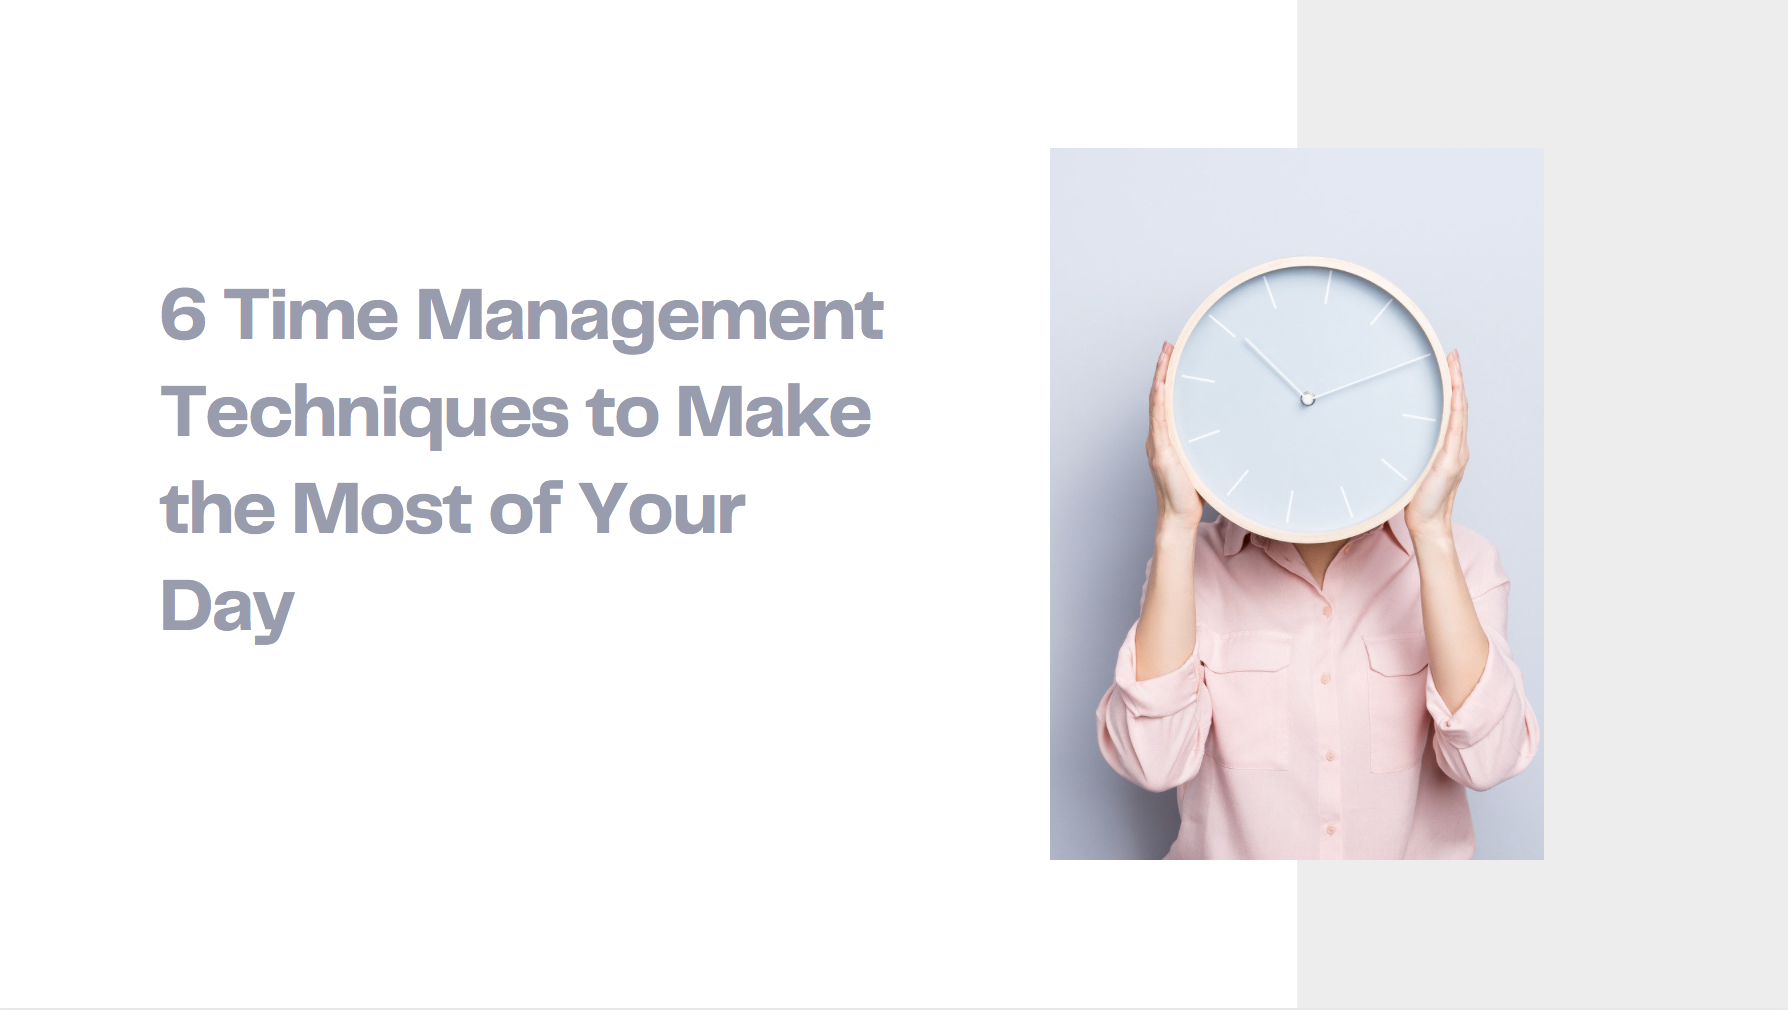 6 time management Techniques to make the most of your day